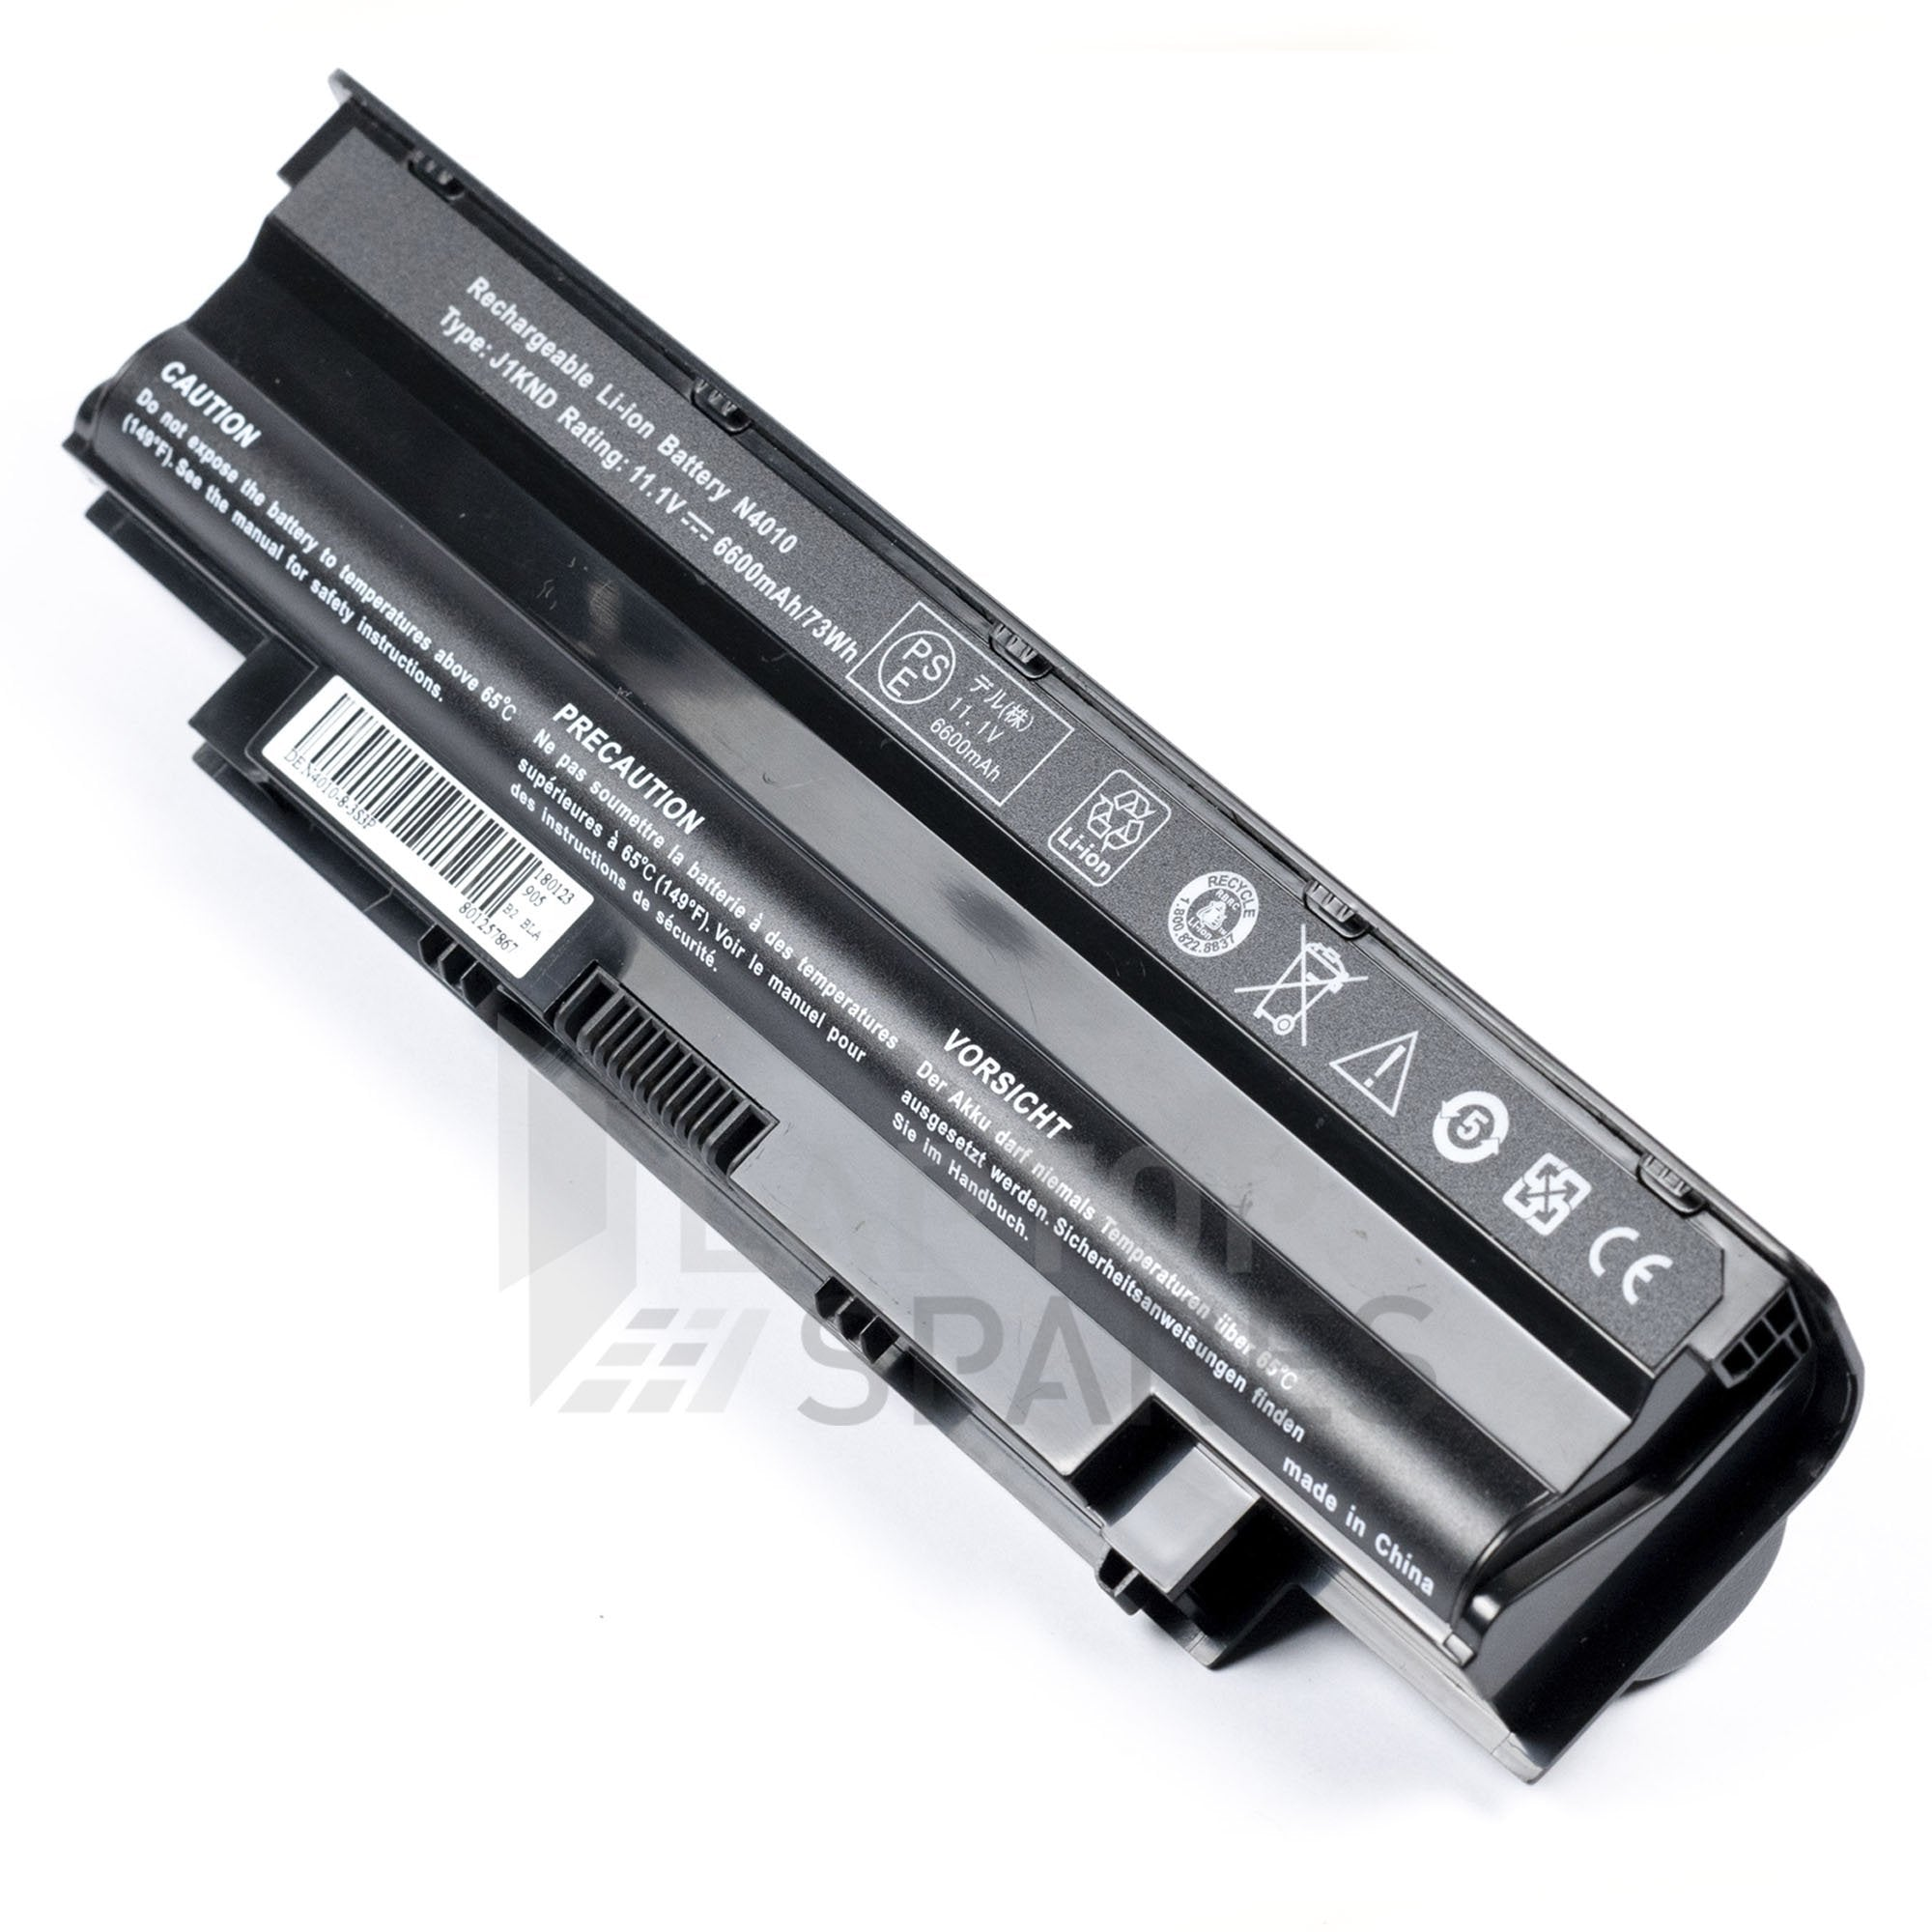 Dell Inspiron 15R N5010 6600mAh 9 Cell Battery